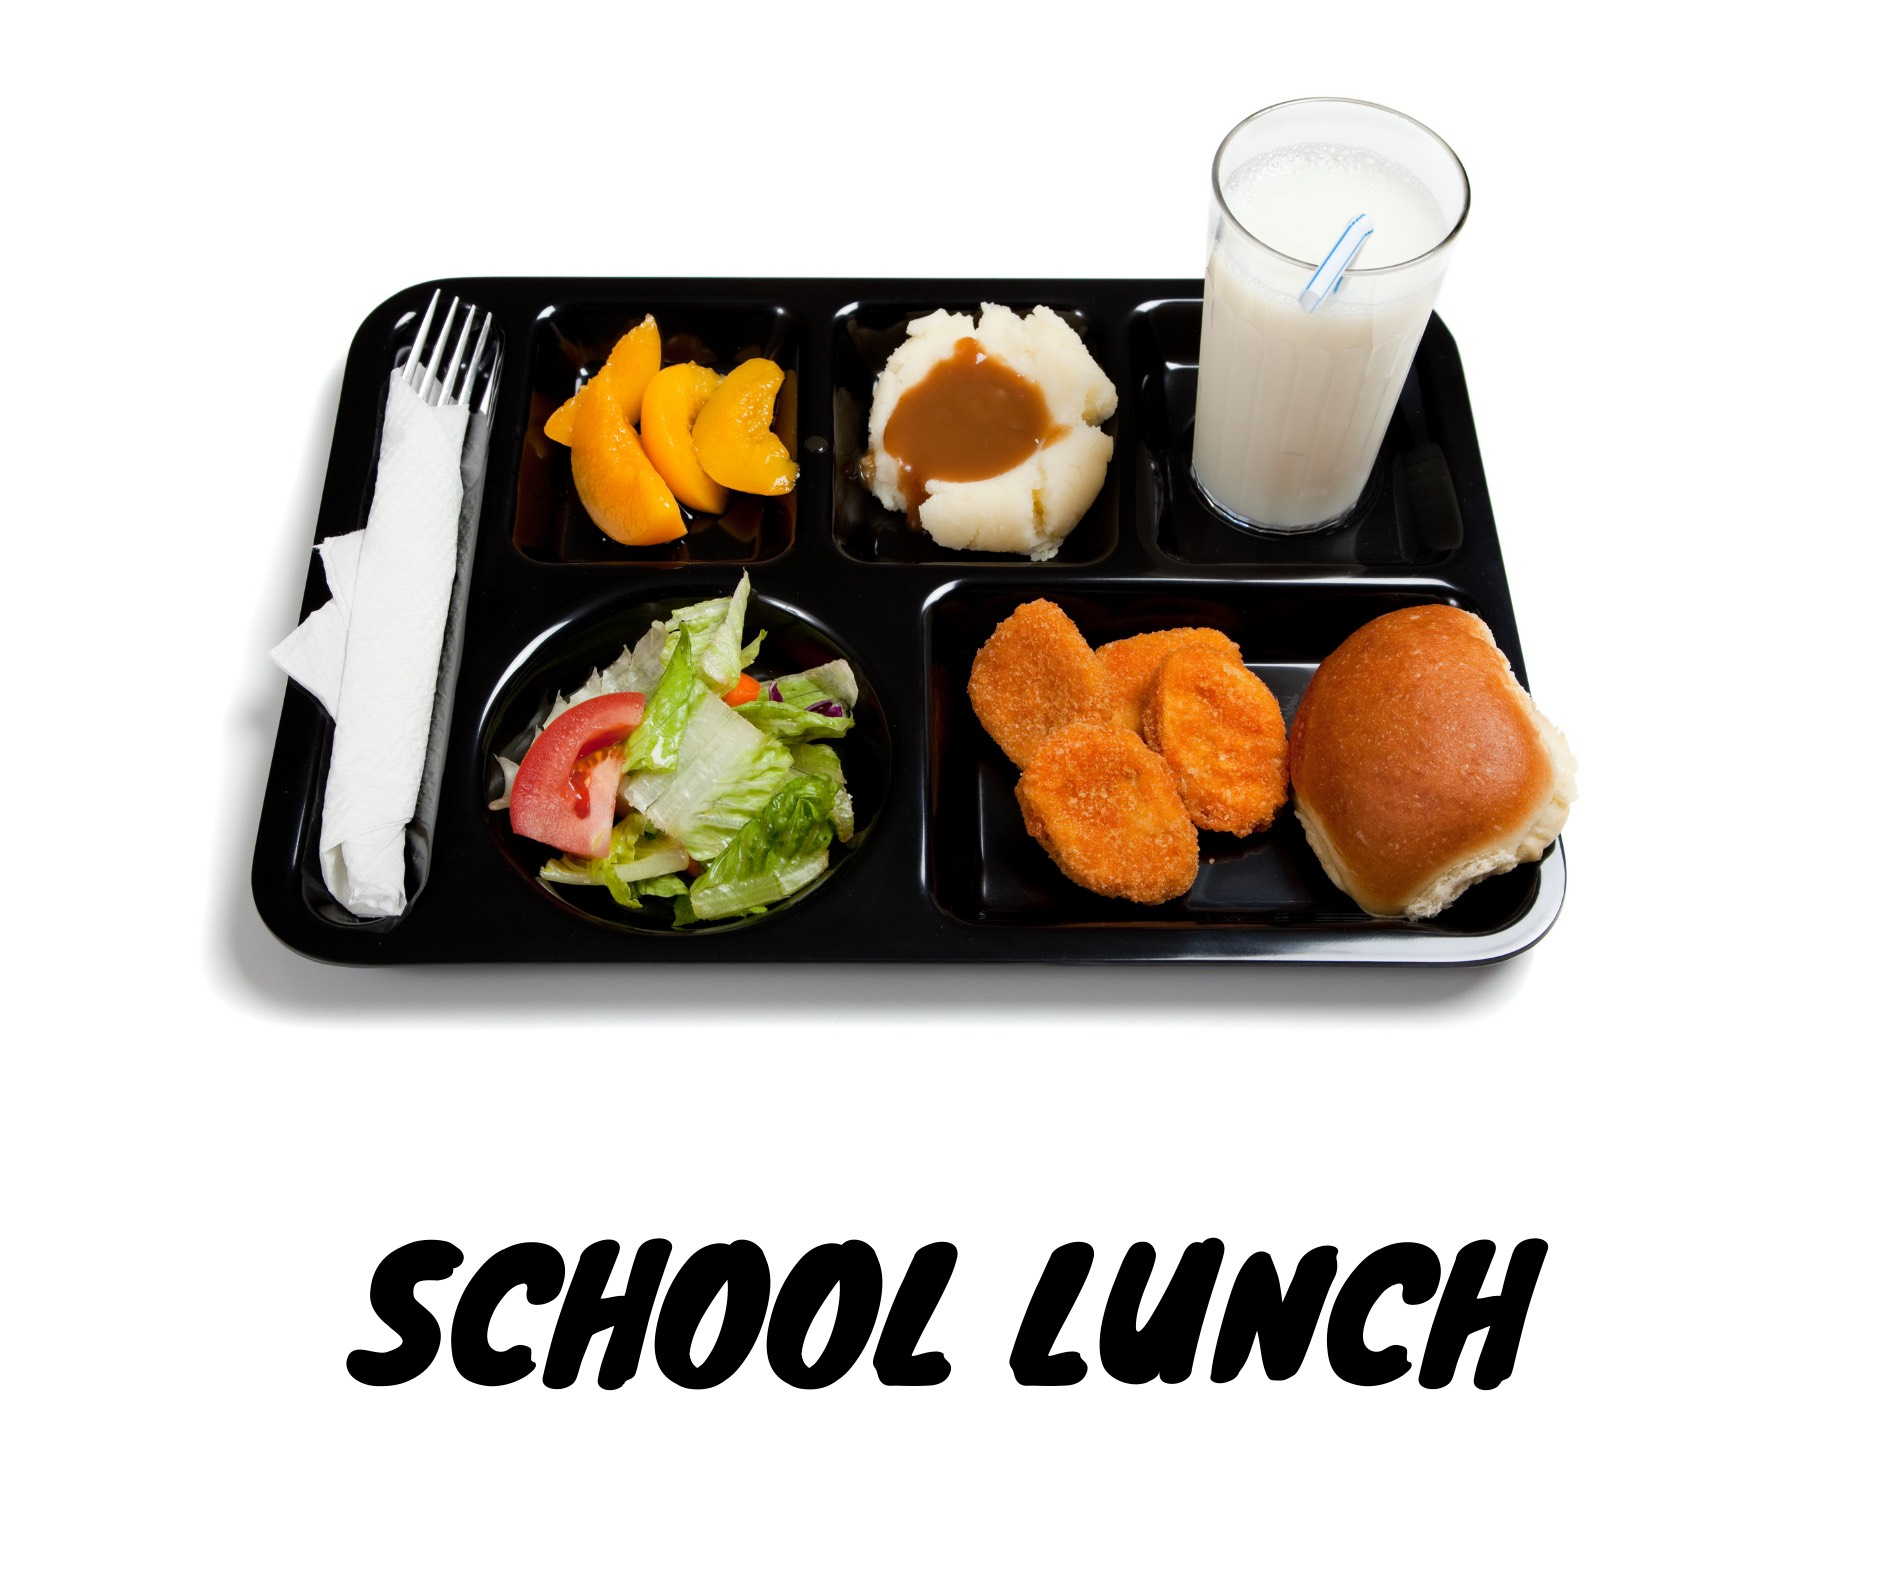 Thank you USDA! All students have been eating free breakfast! Starting today, September 2, 2020,  ALL students will eat all meals FREE until December 31, 2020.